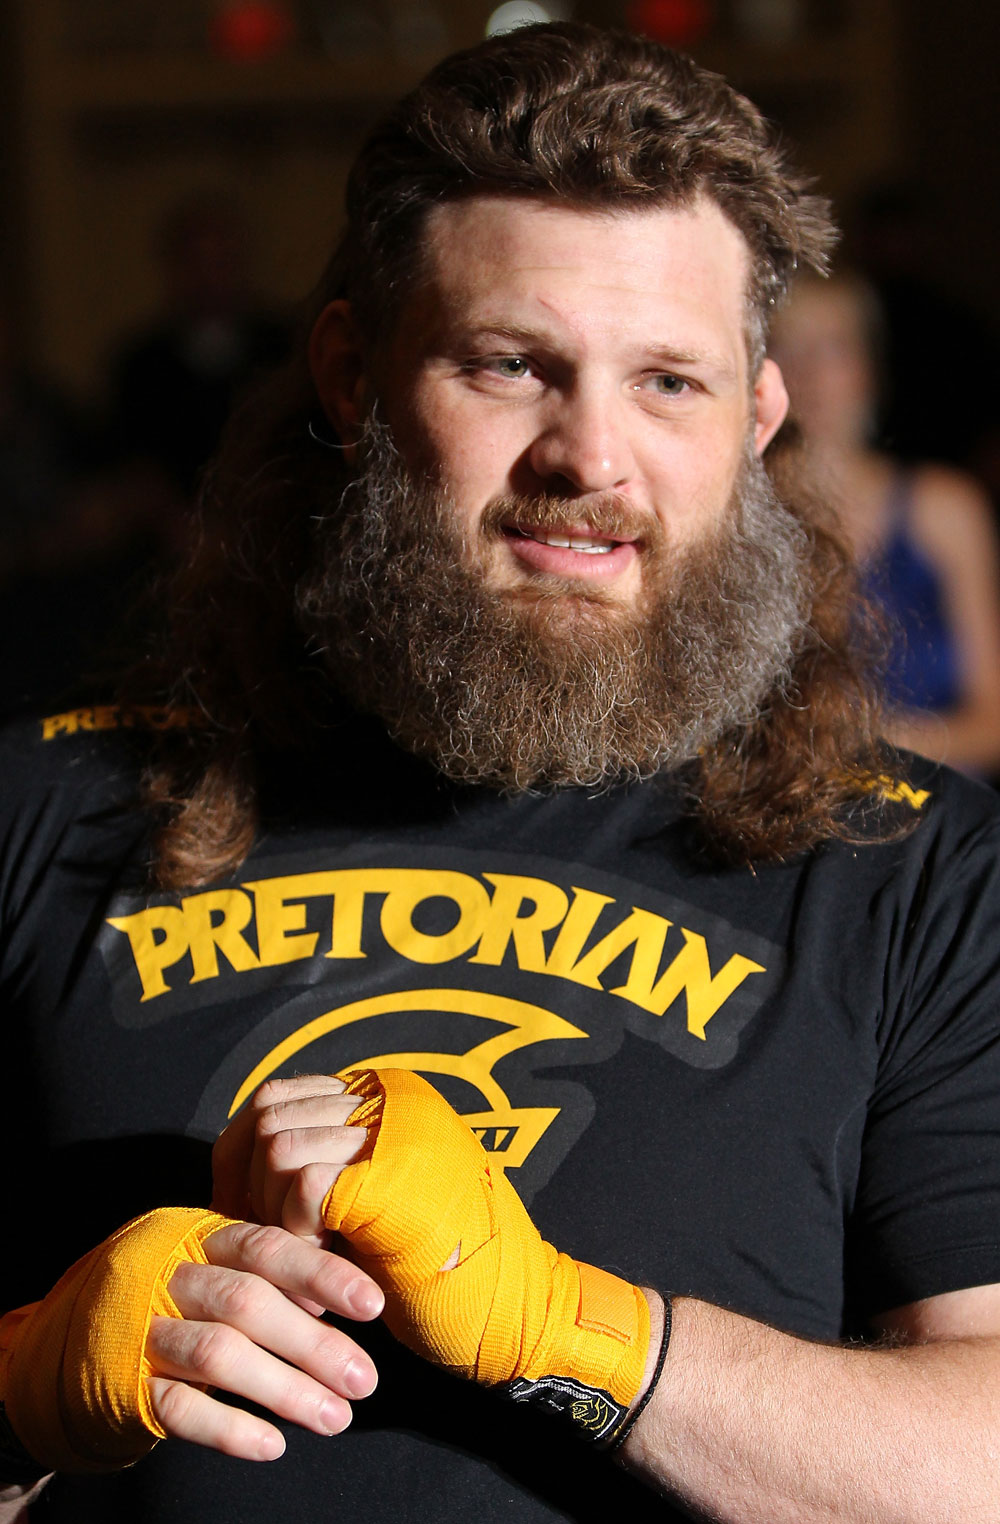 LAS VEGAS, NV - MAY 23:   Roy Nelson works out for the media and fans during the UFC 146 Open Workouts at MGM Grand on May 23, 2012 in Las Vegas, Nevada.  (Photo by Josh Hedges/Zuffa LLC/Zuffa LLC via Getty Images)